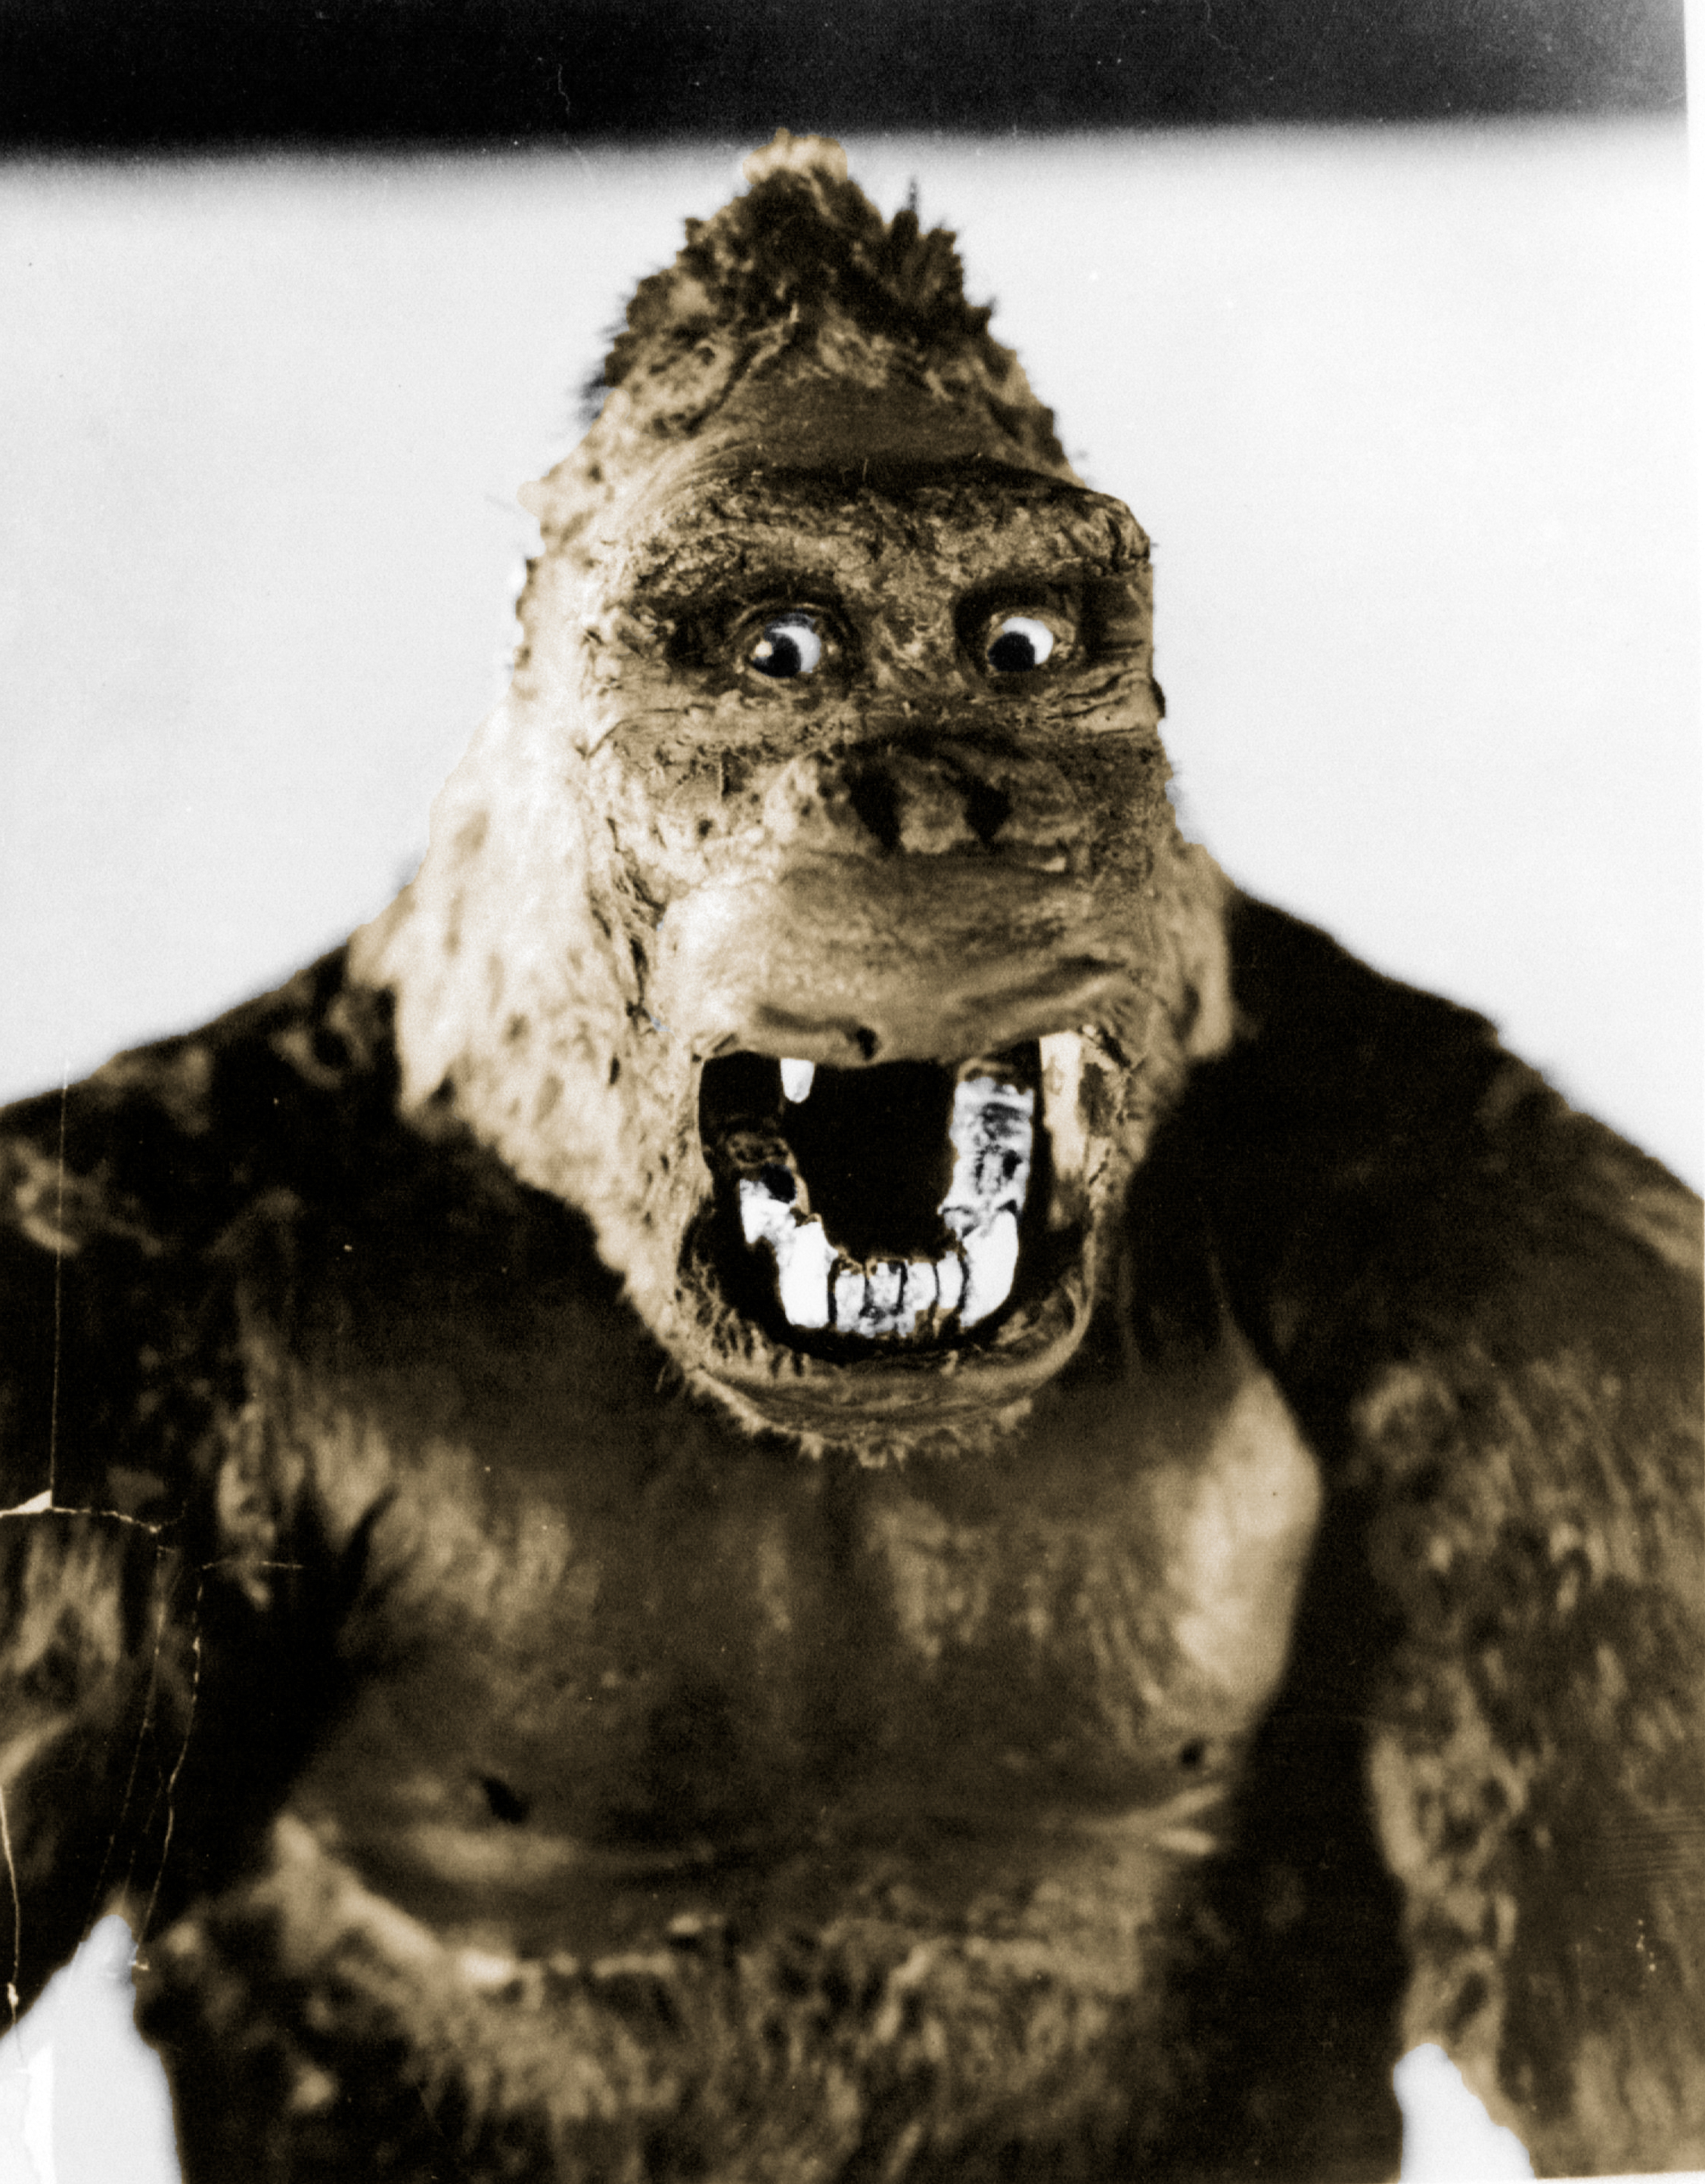 king kong A film crew goes to a tropical island for an exotic location shoot and discovers a colossal ape who takes a shine to their female blonde star.